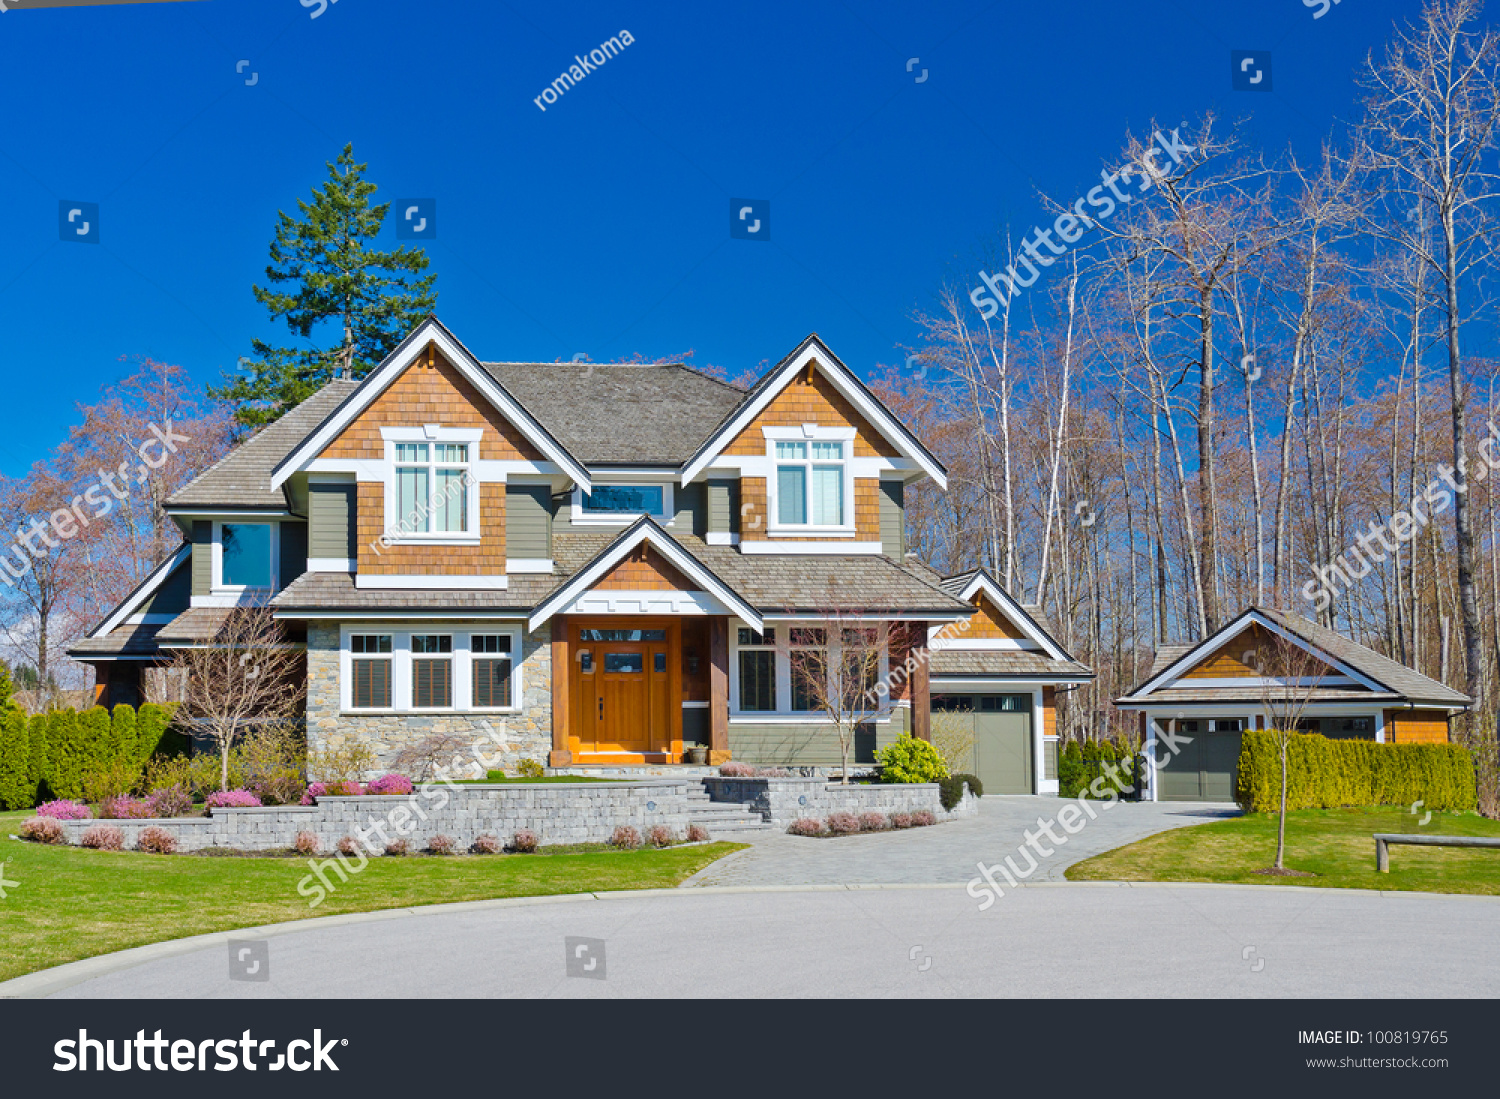 Big luxury home detached garage suburbs stock photo for House with big garage